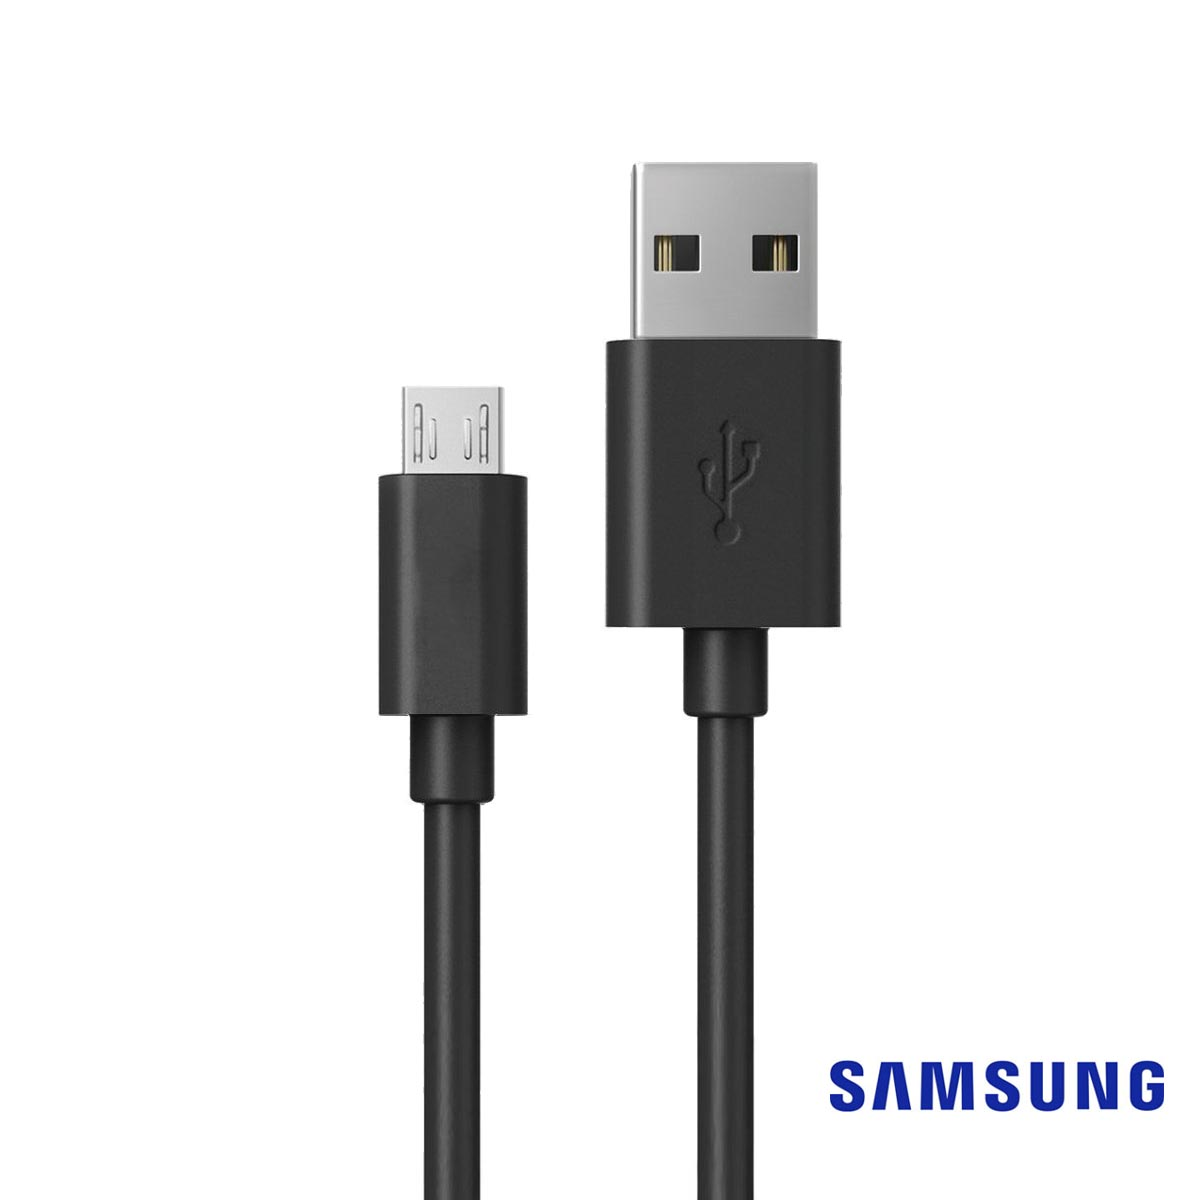 Samsung [5 Feet] Micro USB to USB Charge & Sync Data Cable [Black] [ECB-DU4EBE]